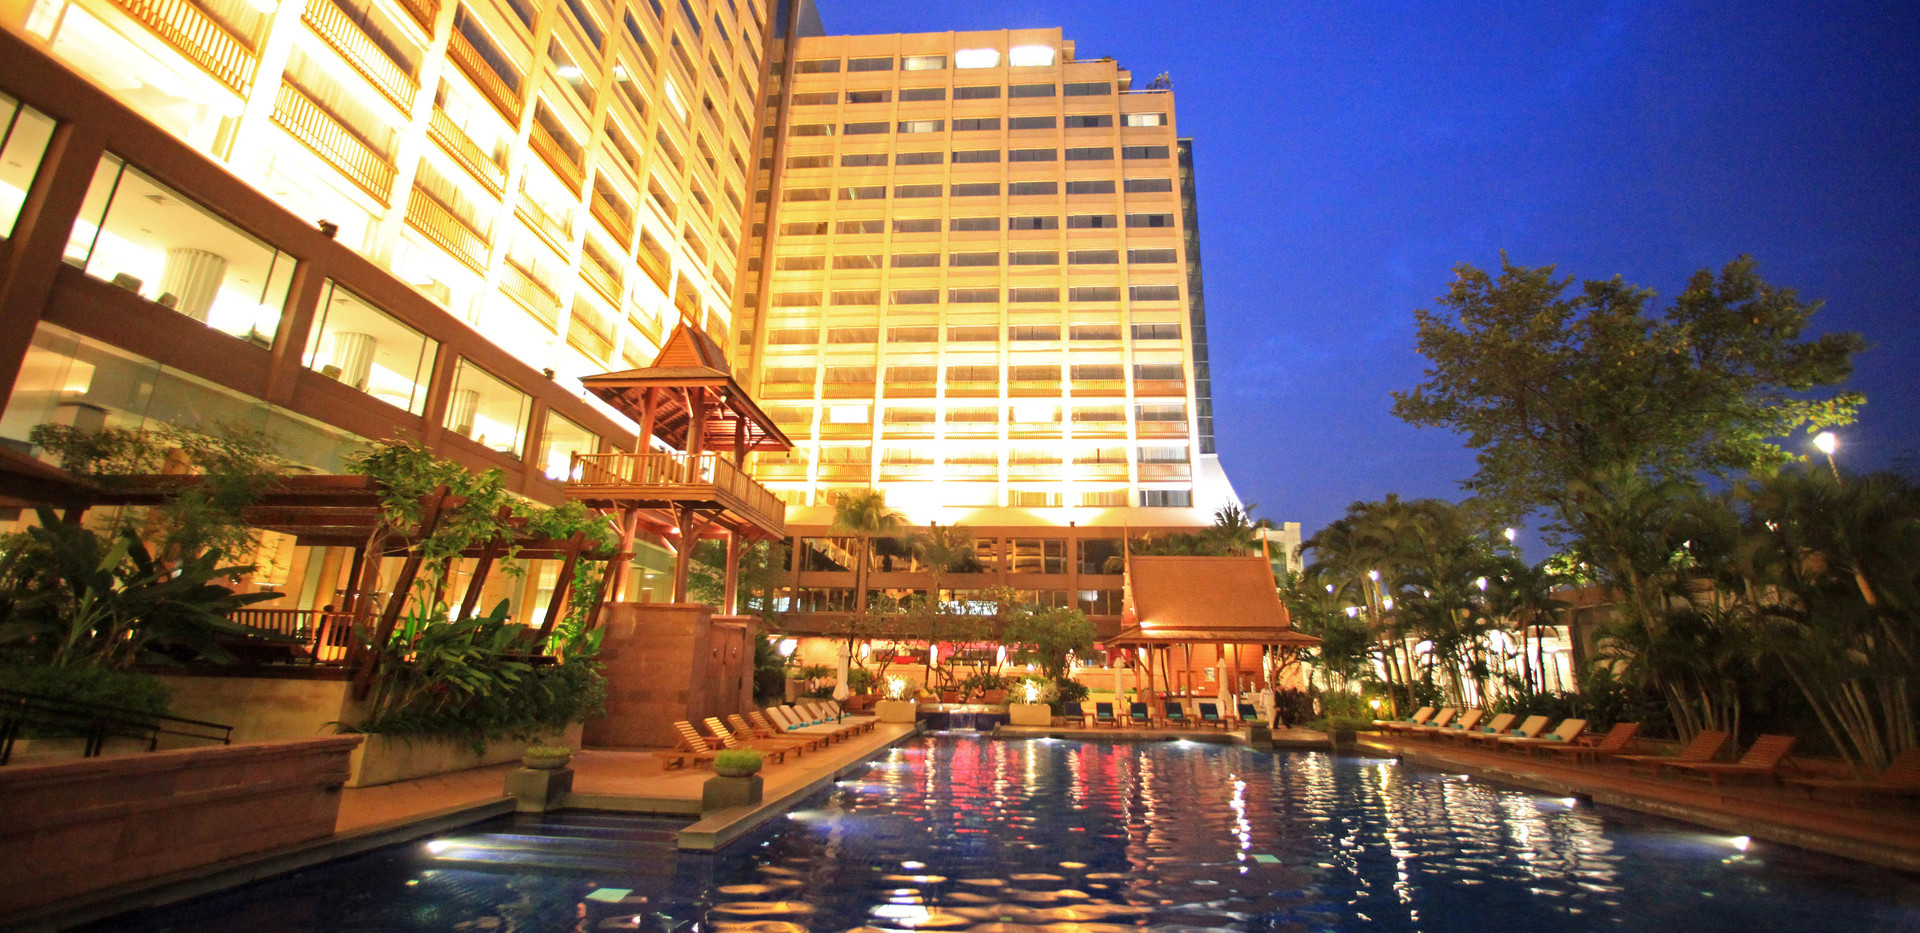 2. Swimming Pool 1 - Ramada Plaza Menam